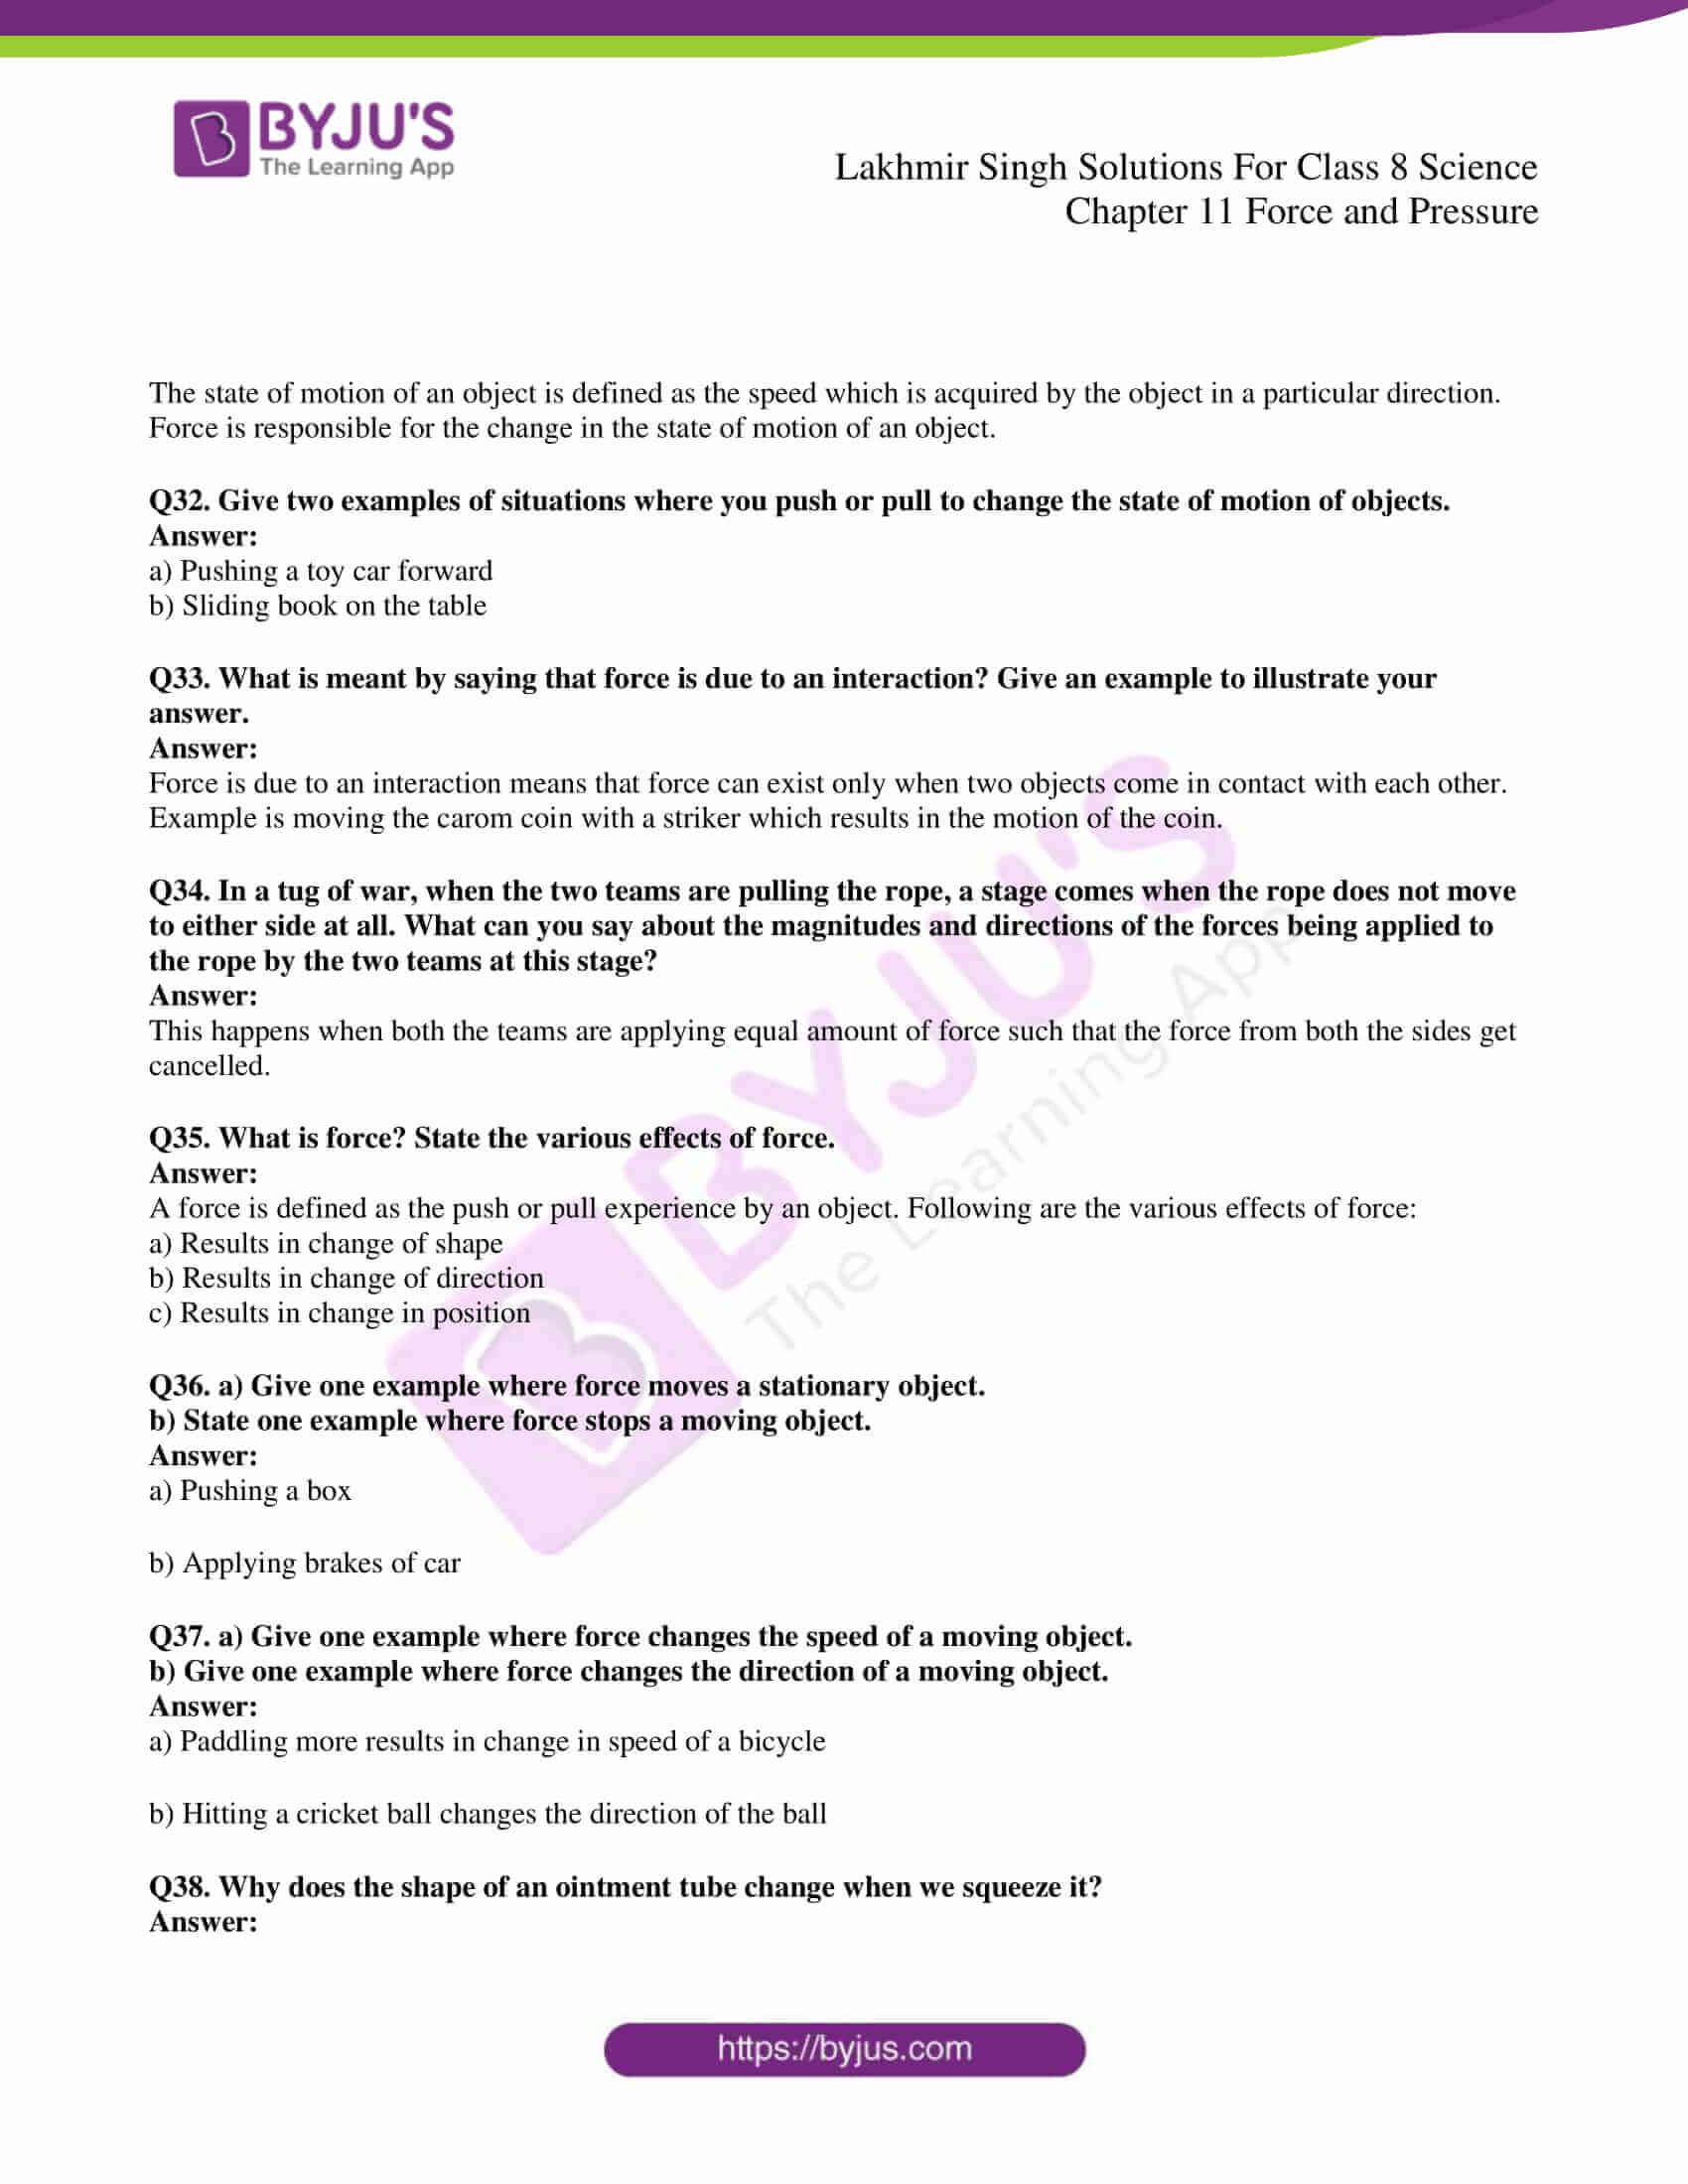 lakhmir singh solutions for class 8 science chapter 11 05